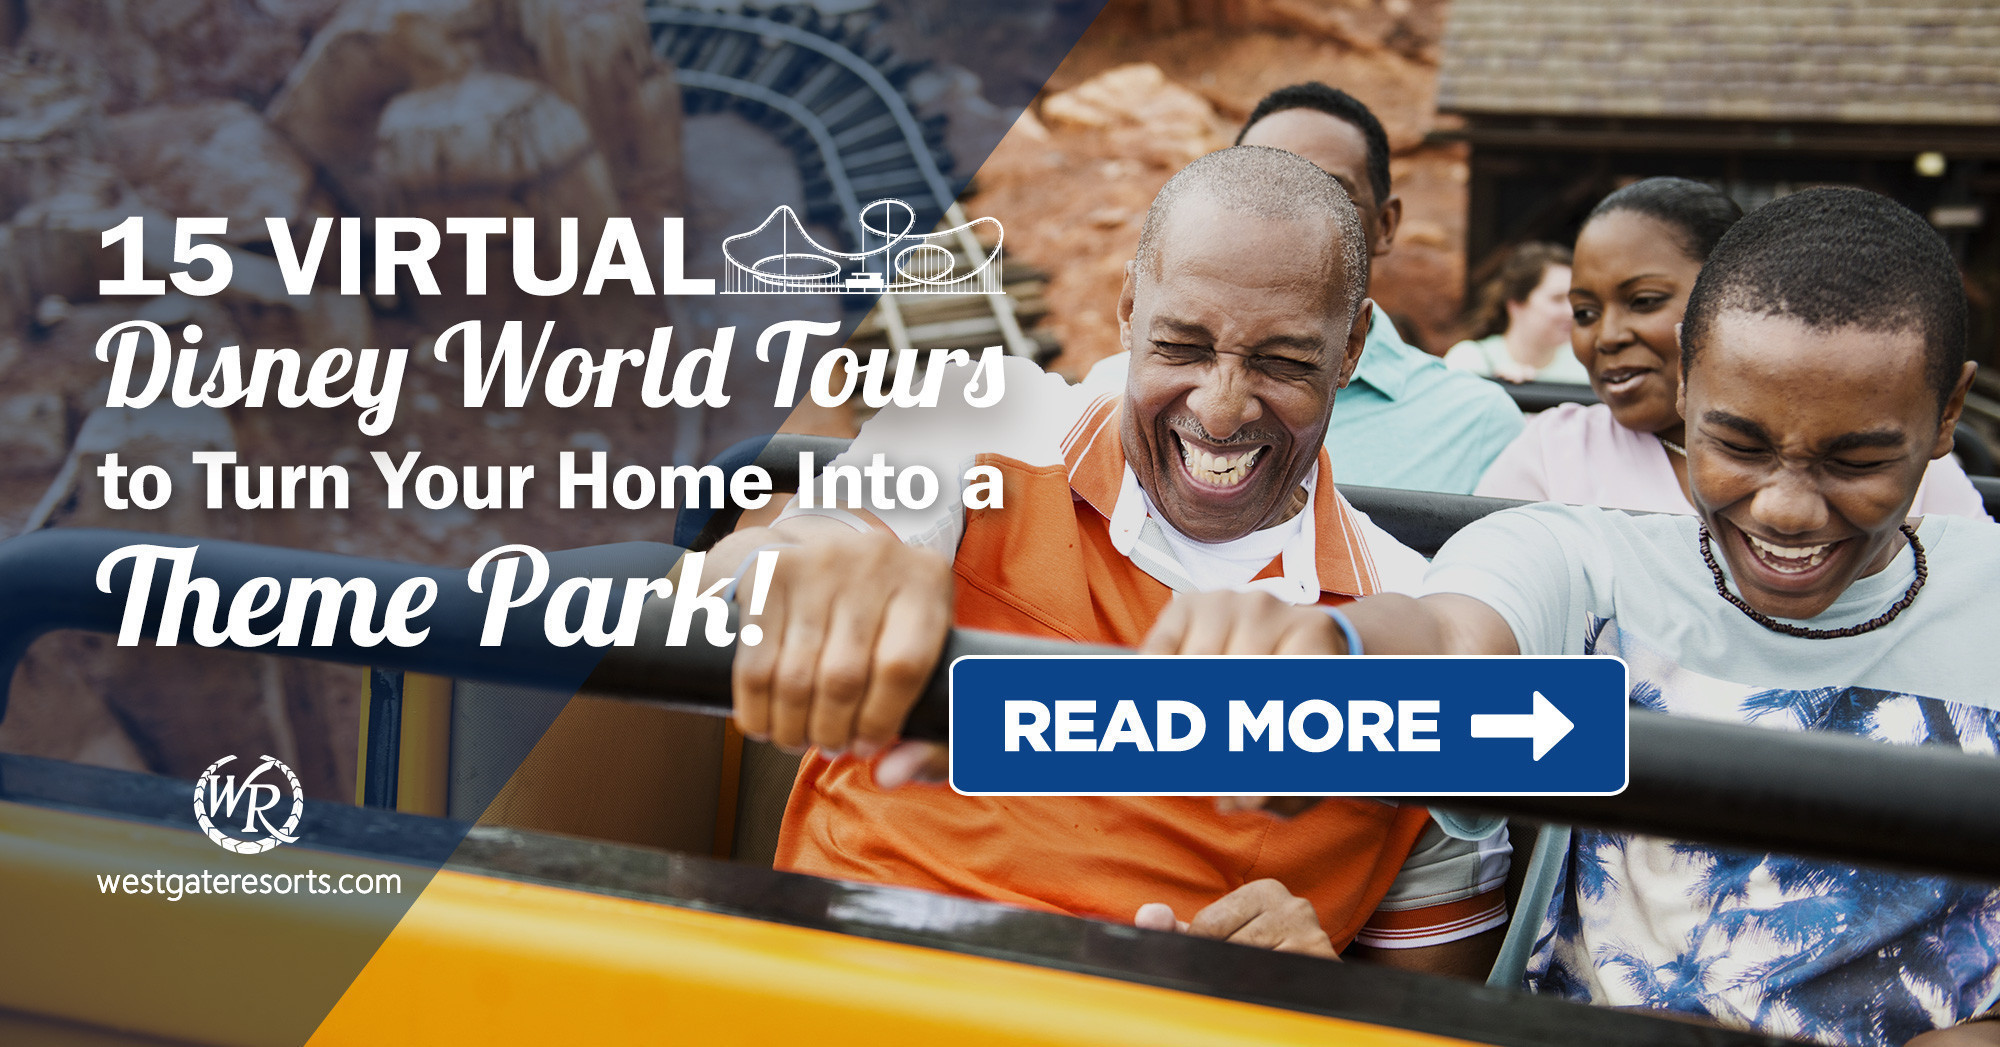 15 Virtual Disney World Tours to Turn Your Home Into a Theme Park!